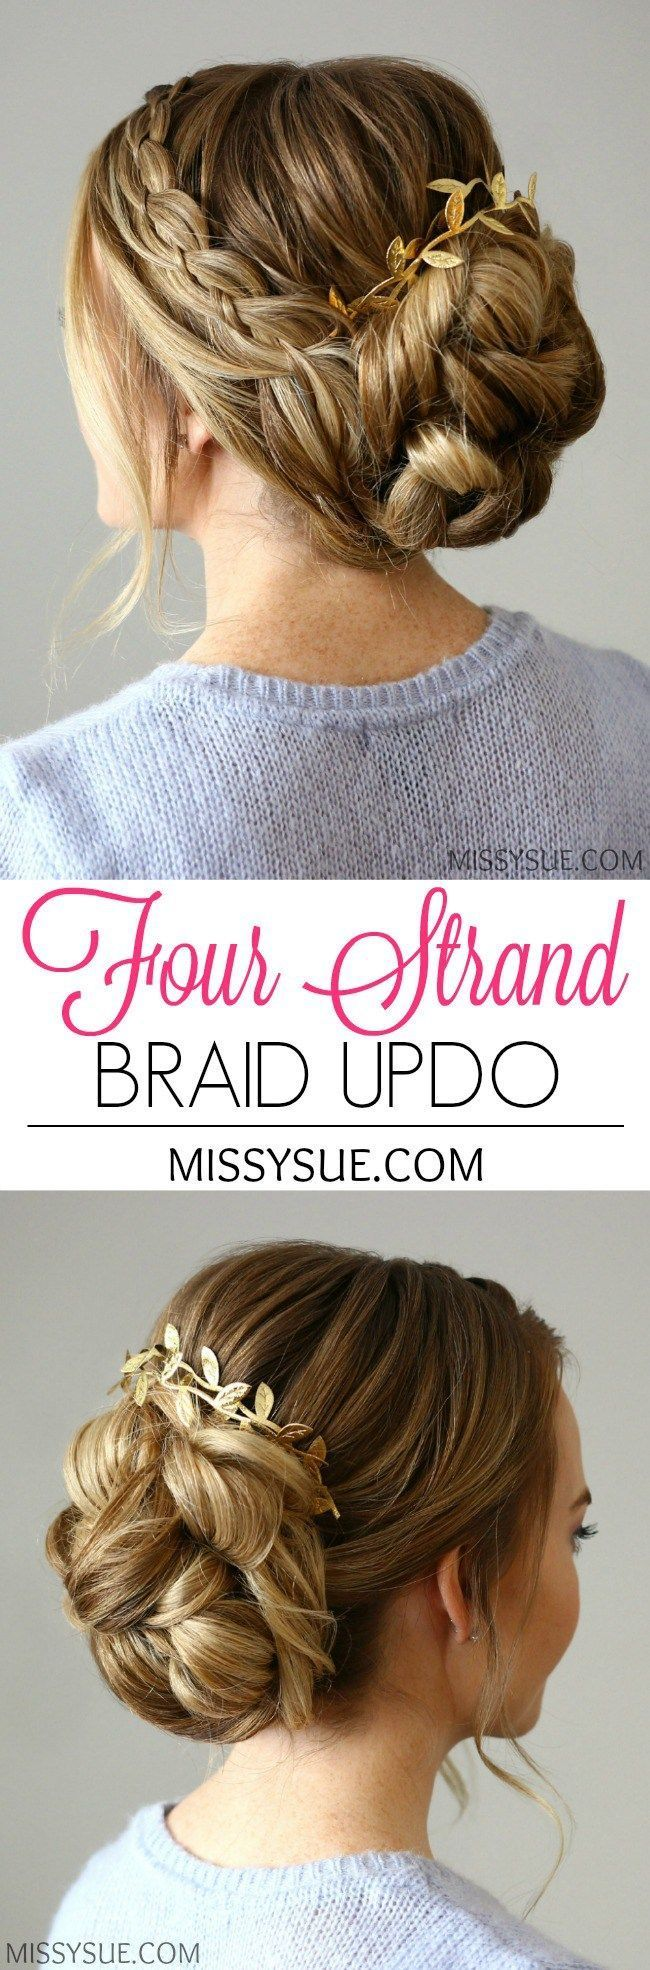 This four strand braid updo is elegant and formal; a perfect hairstyle for an ev